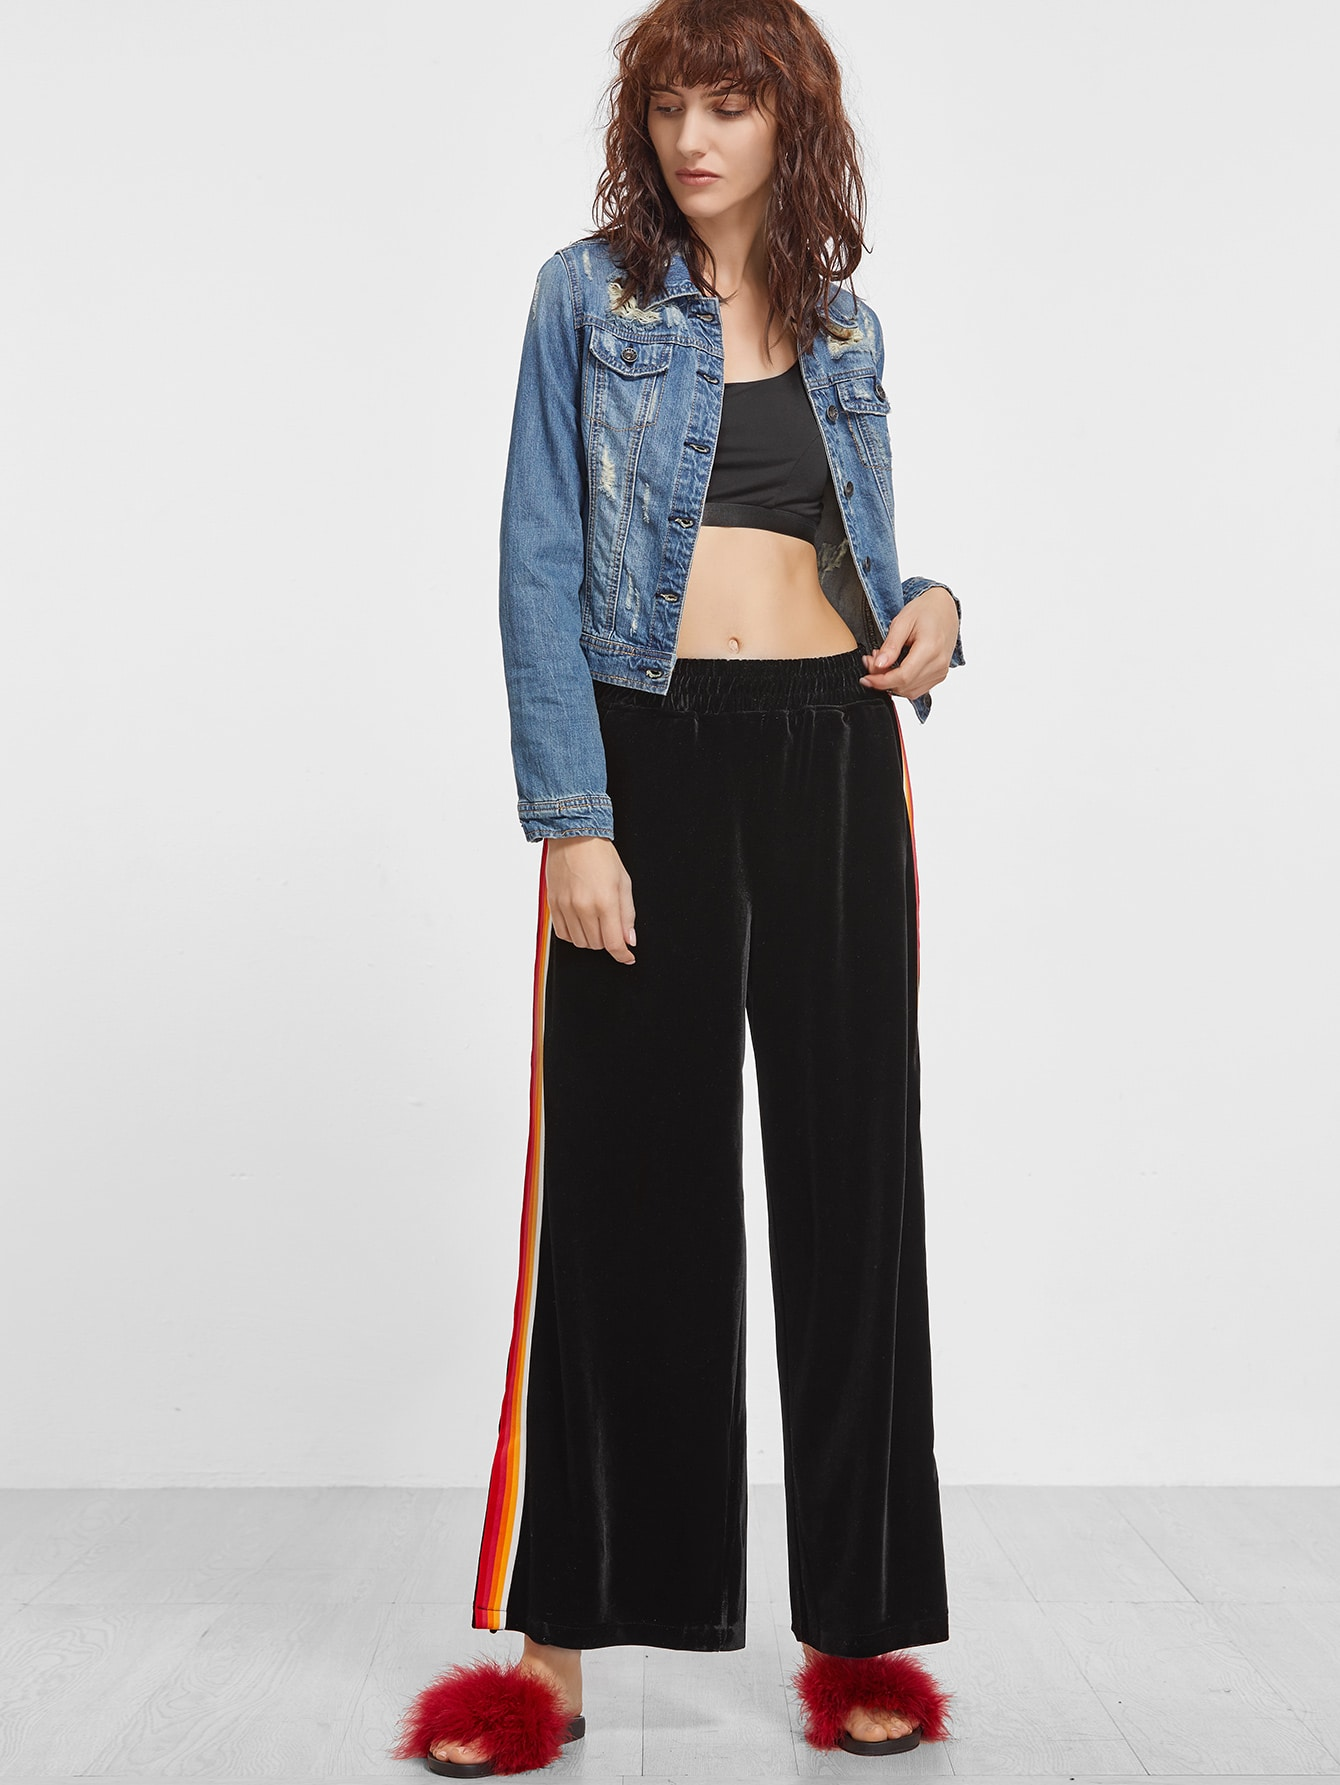 Black Velvet Striped Side Wide Leg PantsBlack Velvet Striped Side Wide Leg Pants<br><br>color: Black<br>size: M,S